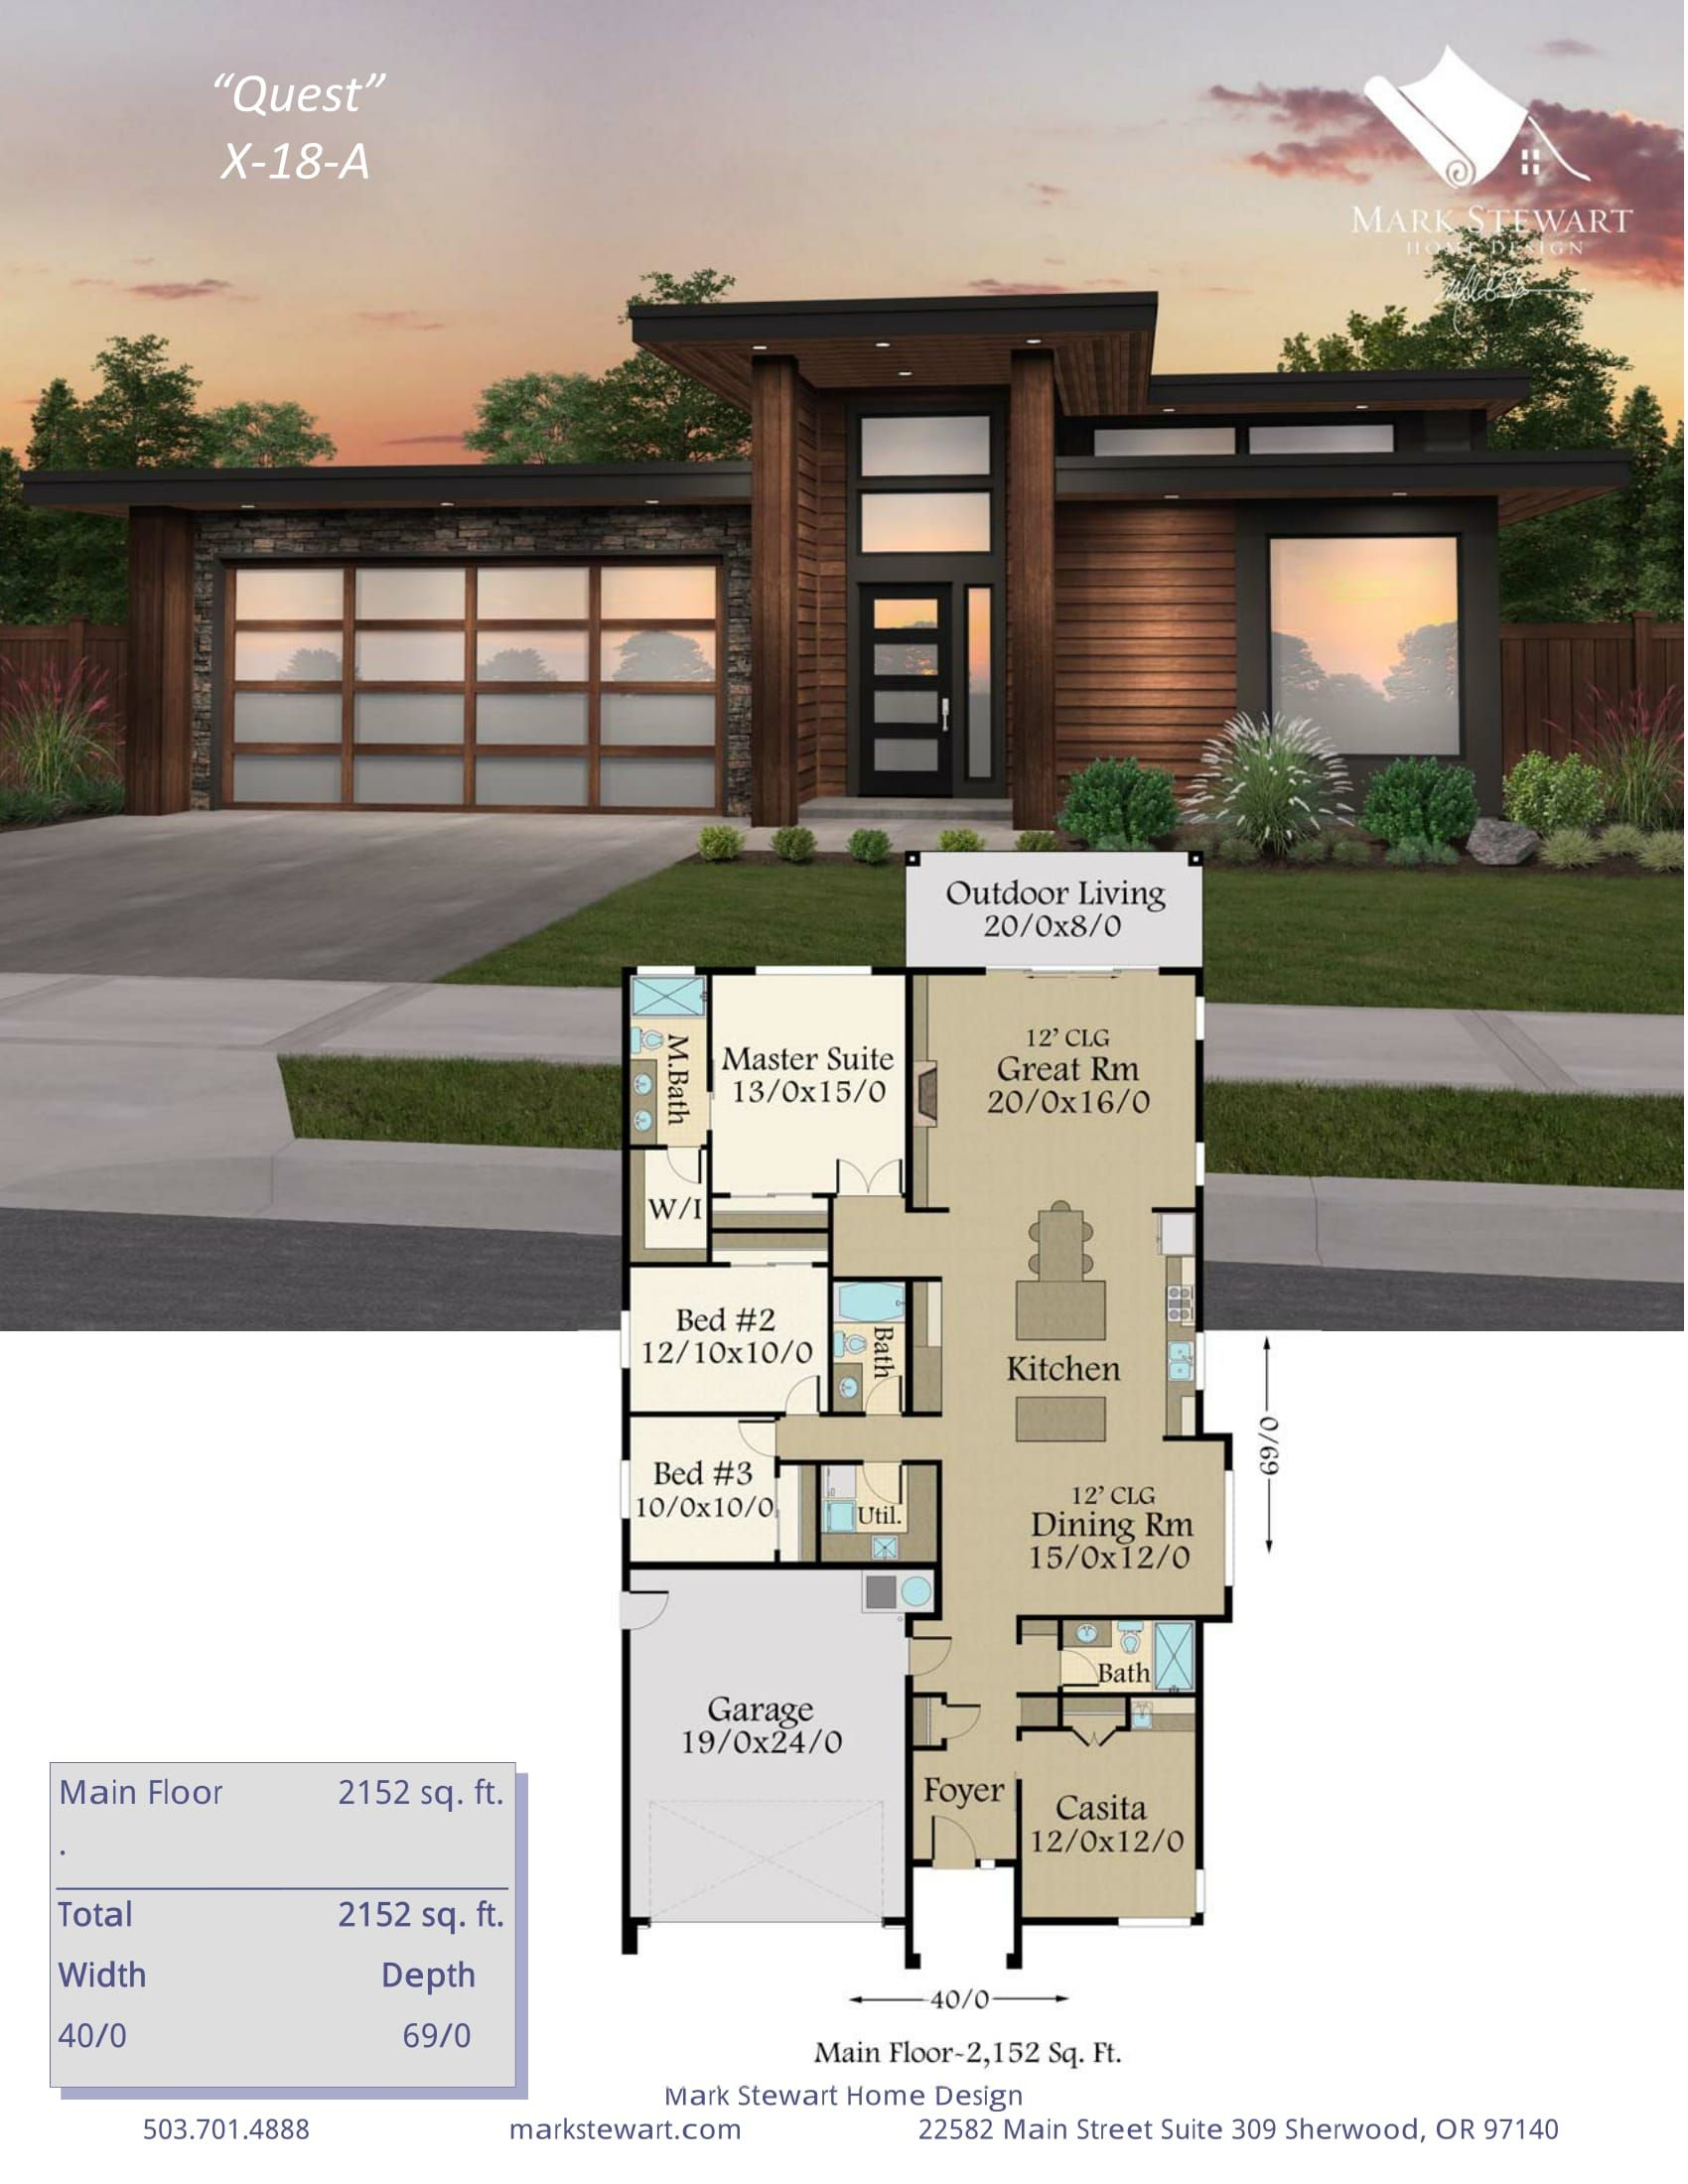 Quest By Mark Stewart Home Design Sims House Design Sims House Plans Contemporary House Plans